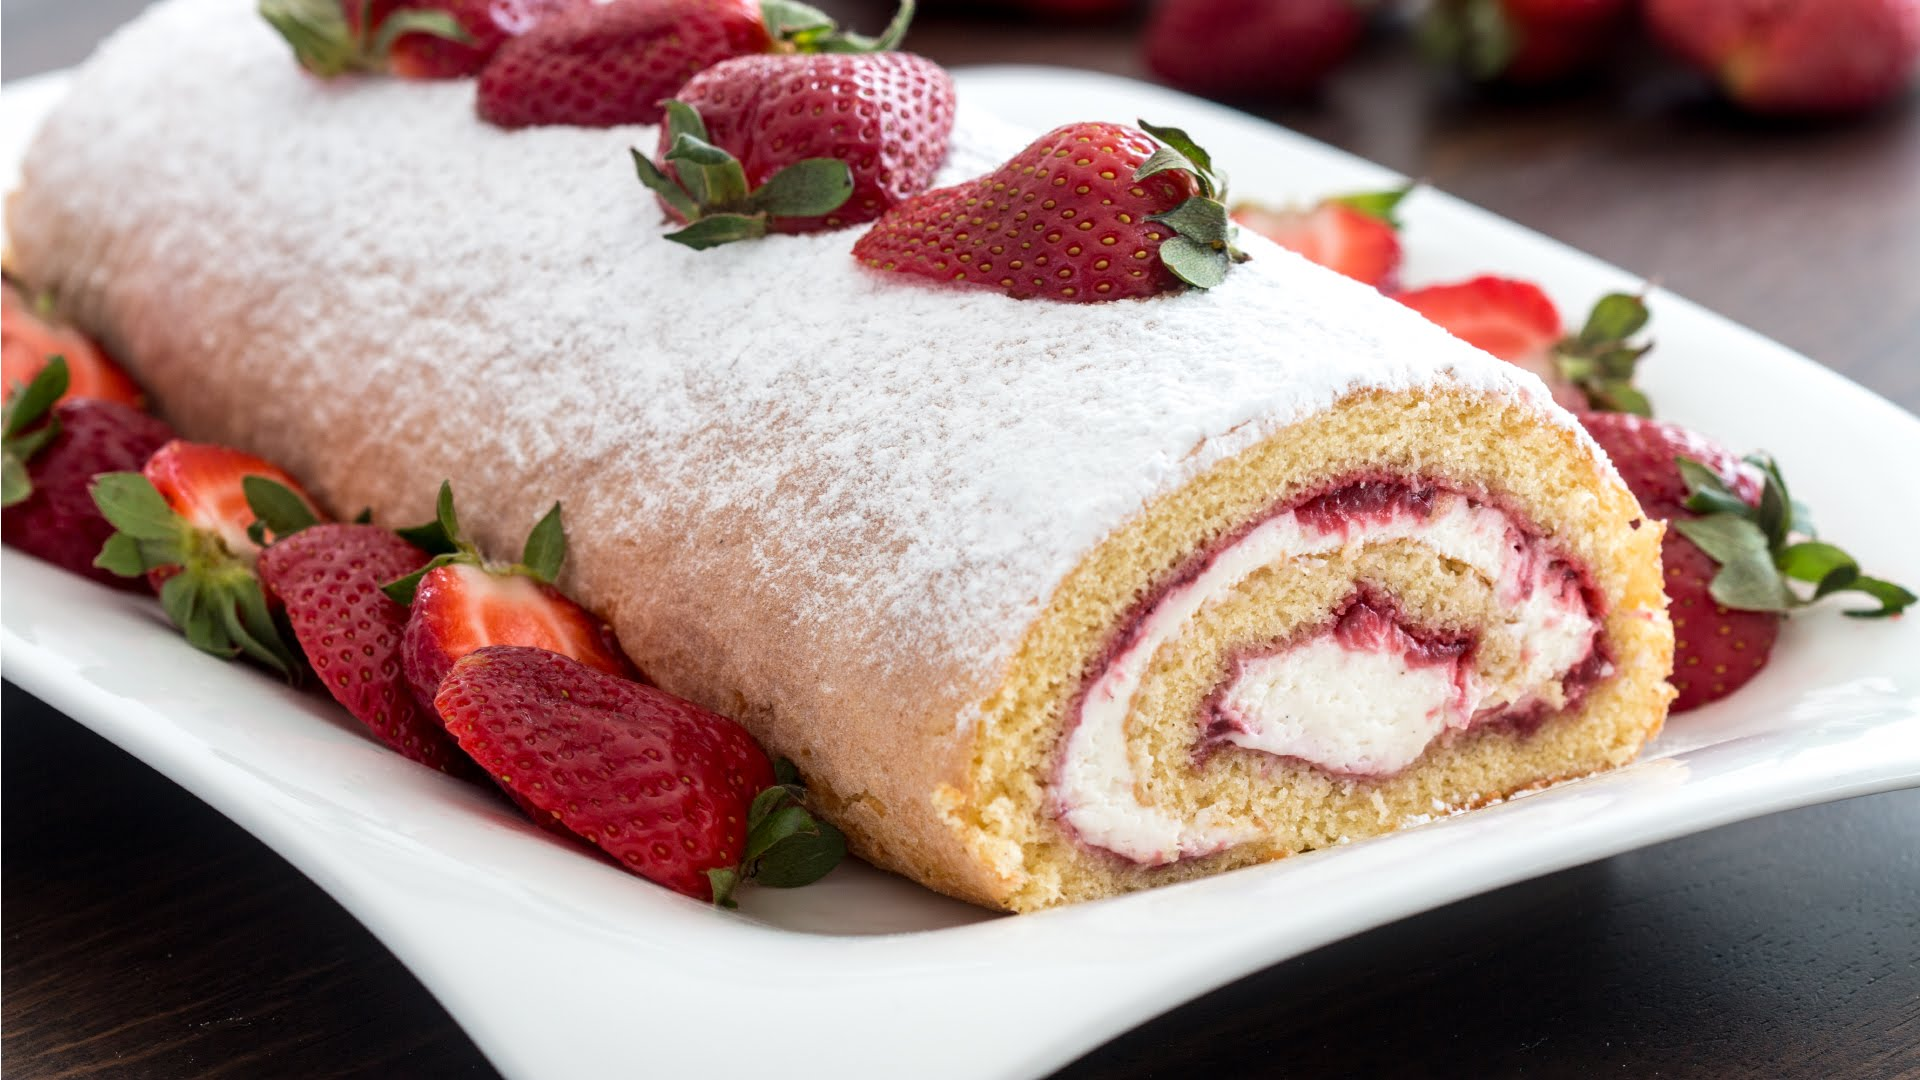 Strawberry Jam Is Not The Only Filling She Adds To This Strawberry Swiss Roll